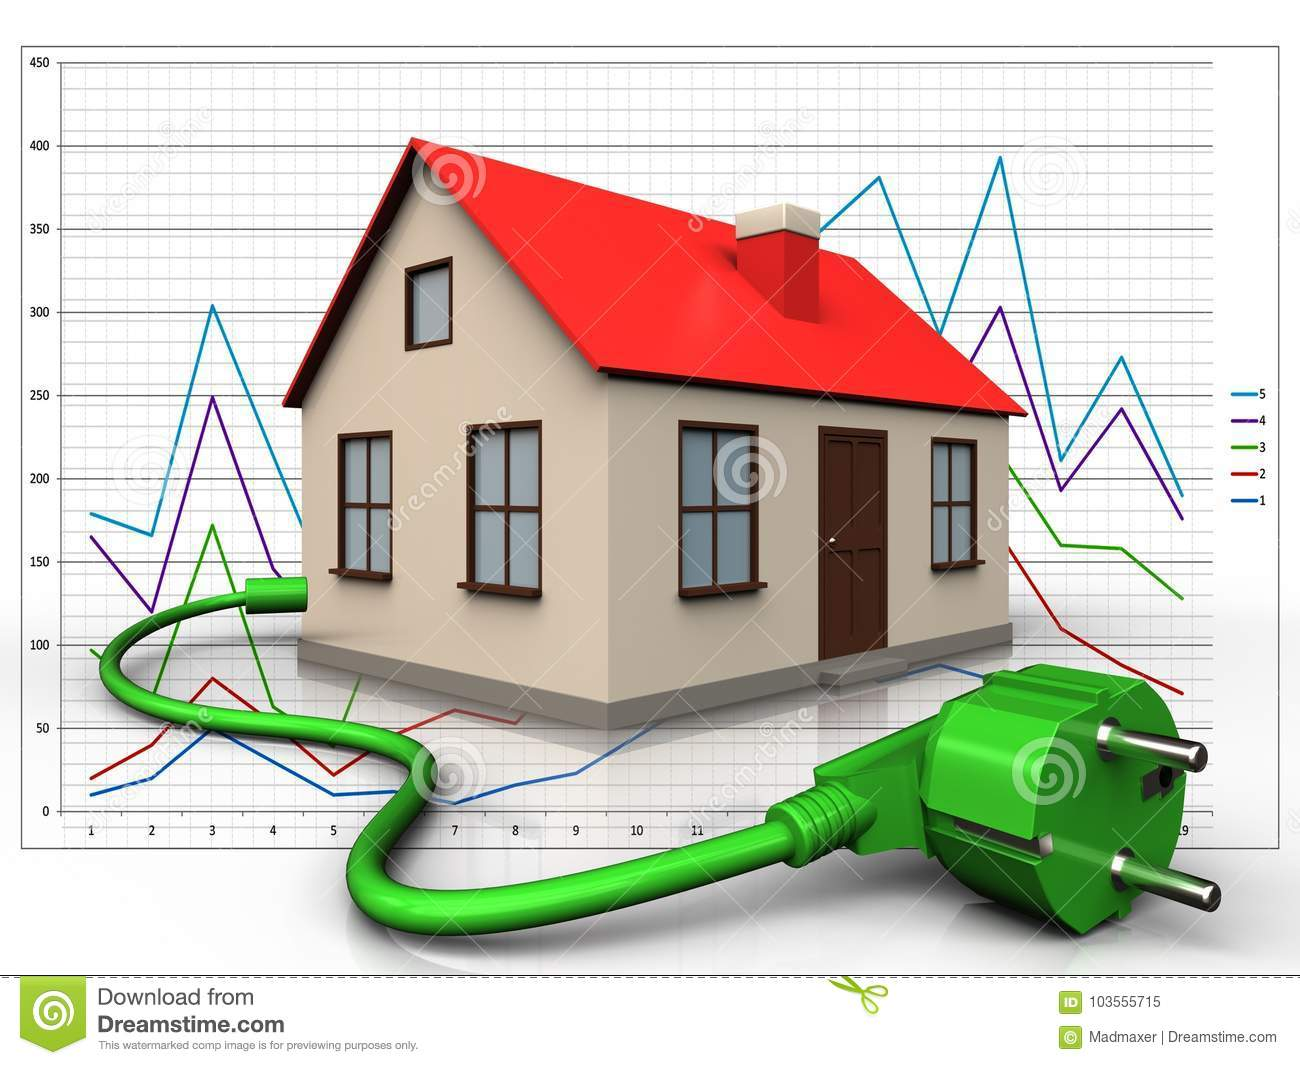 hight resolution of 3d illustration of house with power cord over diagram background